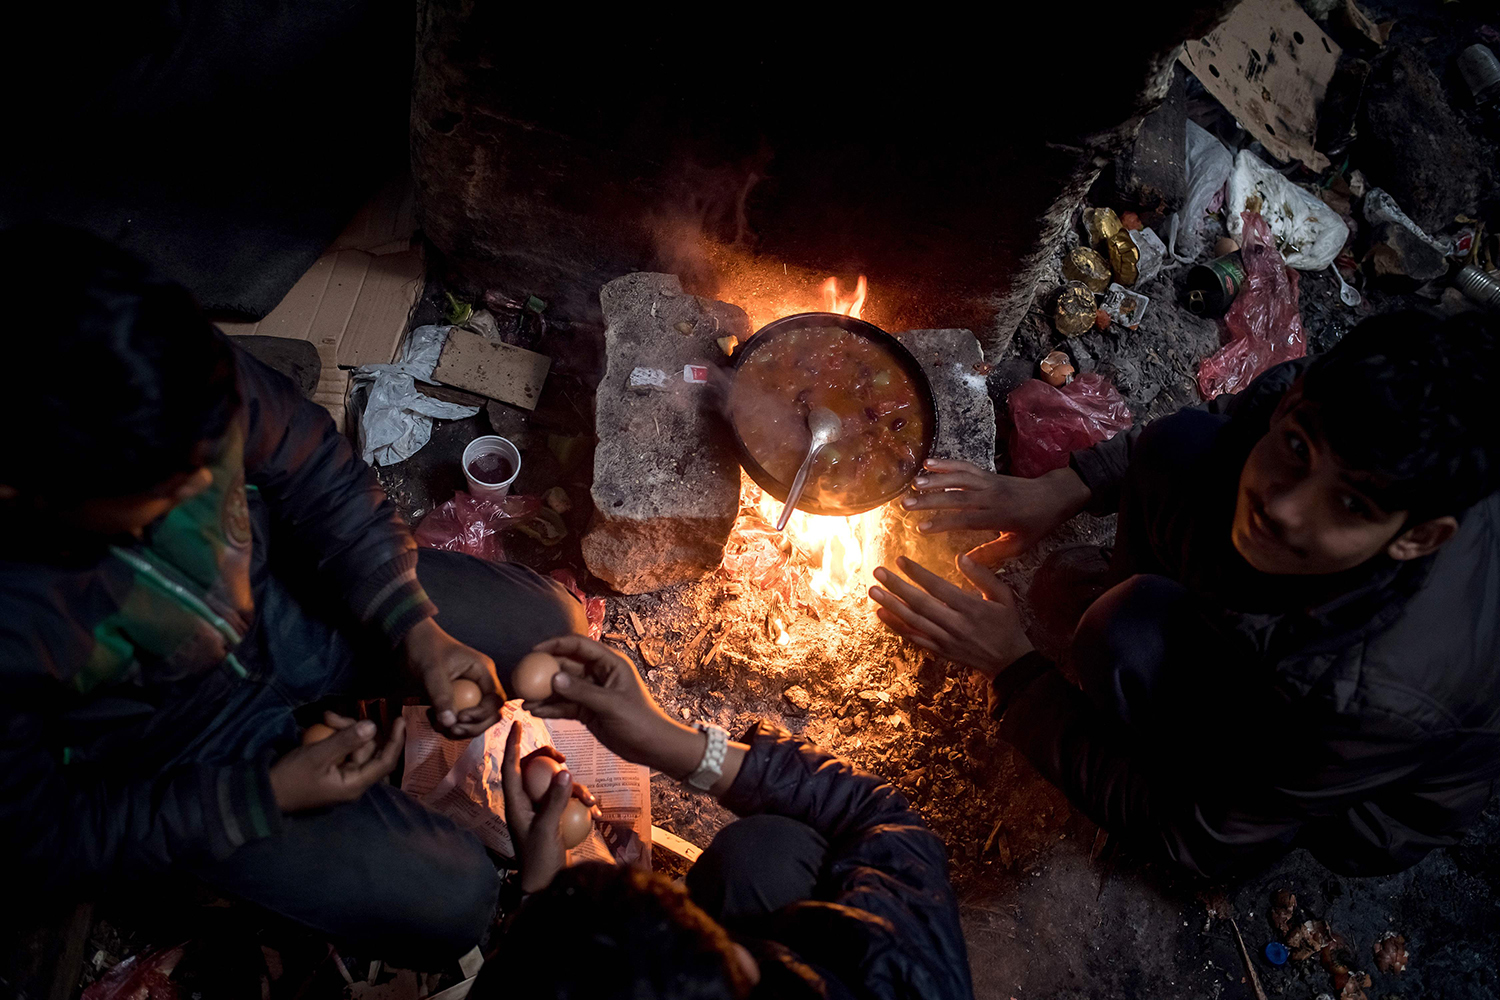 TOPSHOT - Migrants prepare a meal at a makeshift shelter at an abandoned warehouse in Belgrade on December 8, 2016. According to the latest figures, 6,300 migrants are stranded in Serbia. Hundreds of thousands of migrants had passed through Serbia in 2015 and early 2016. This road trough the Balkans had been closed in March after the borders of several countries, including Croatia, had been closed for migrants. / AFP PHOTO / ANDREJ ISAKOVIC / TT / kod 444